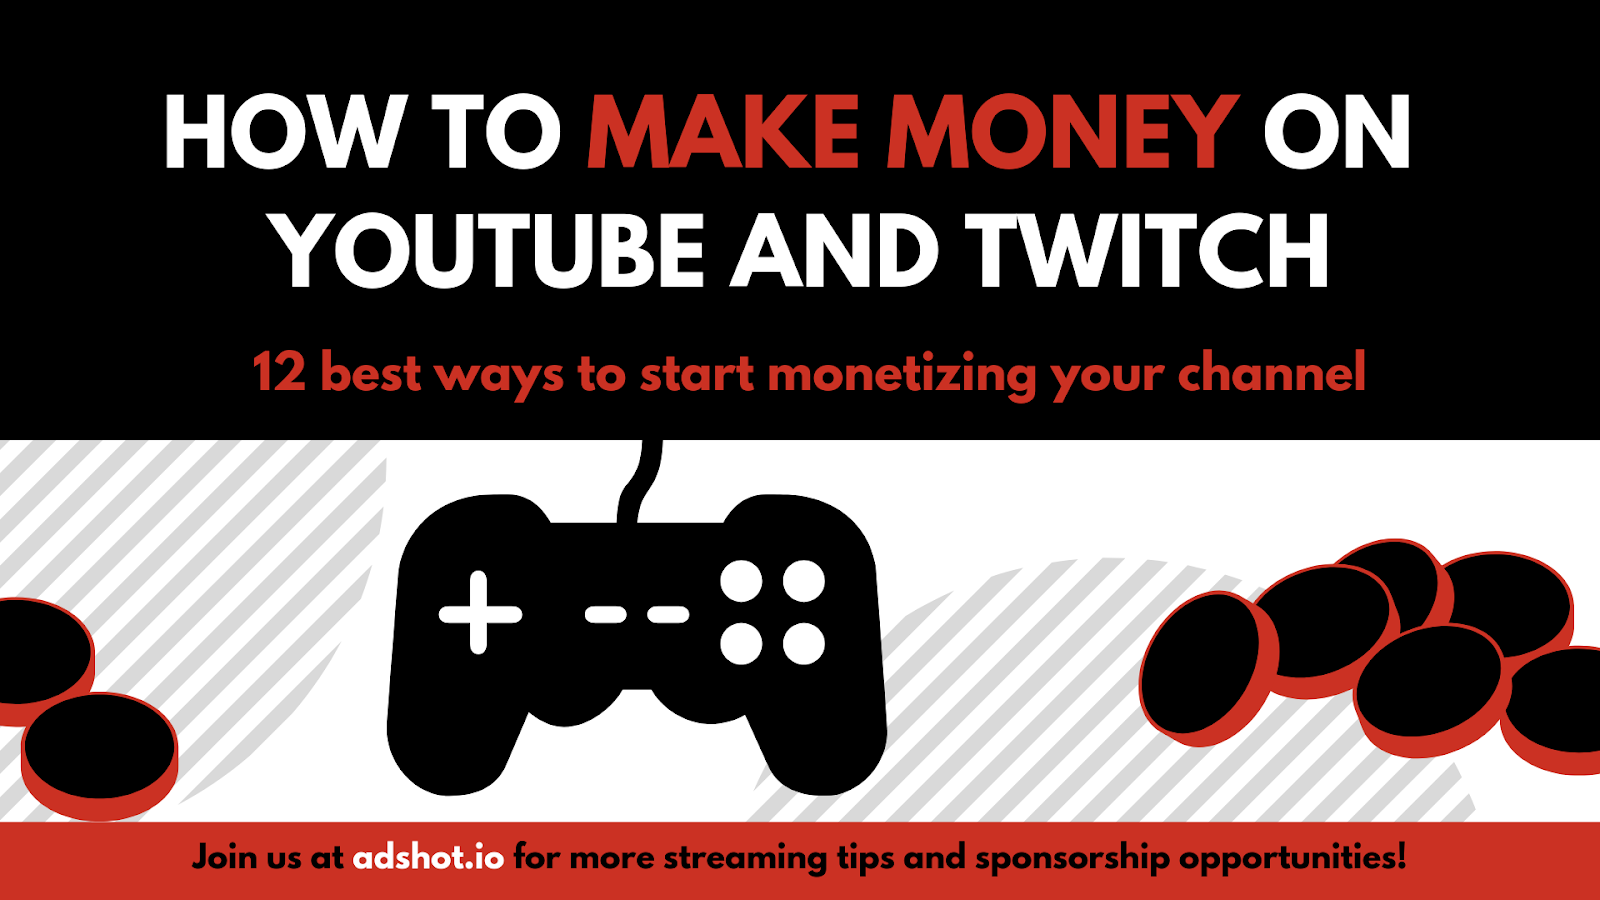 How to make money on YouTube and Twitch: 12 best ways to start